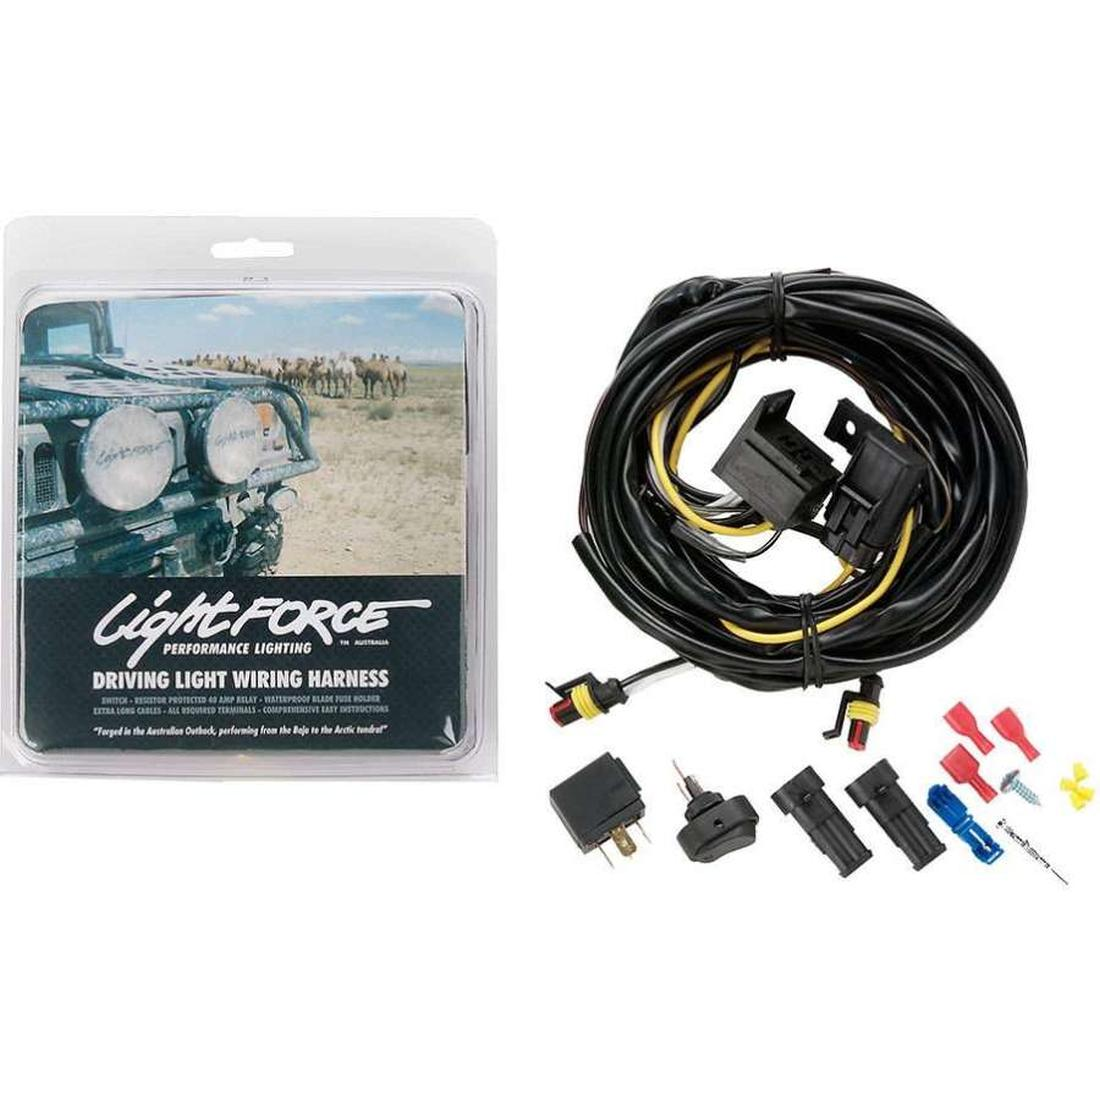 Lightforce 24V Driving Light Wiring Kit/Harness image